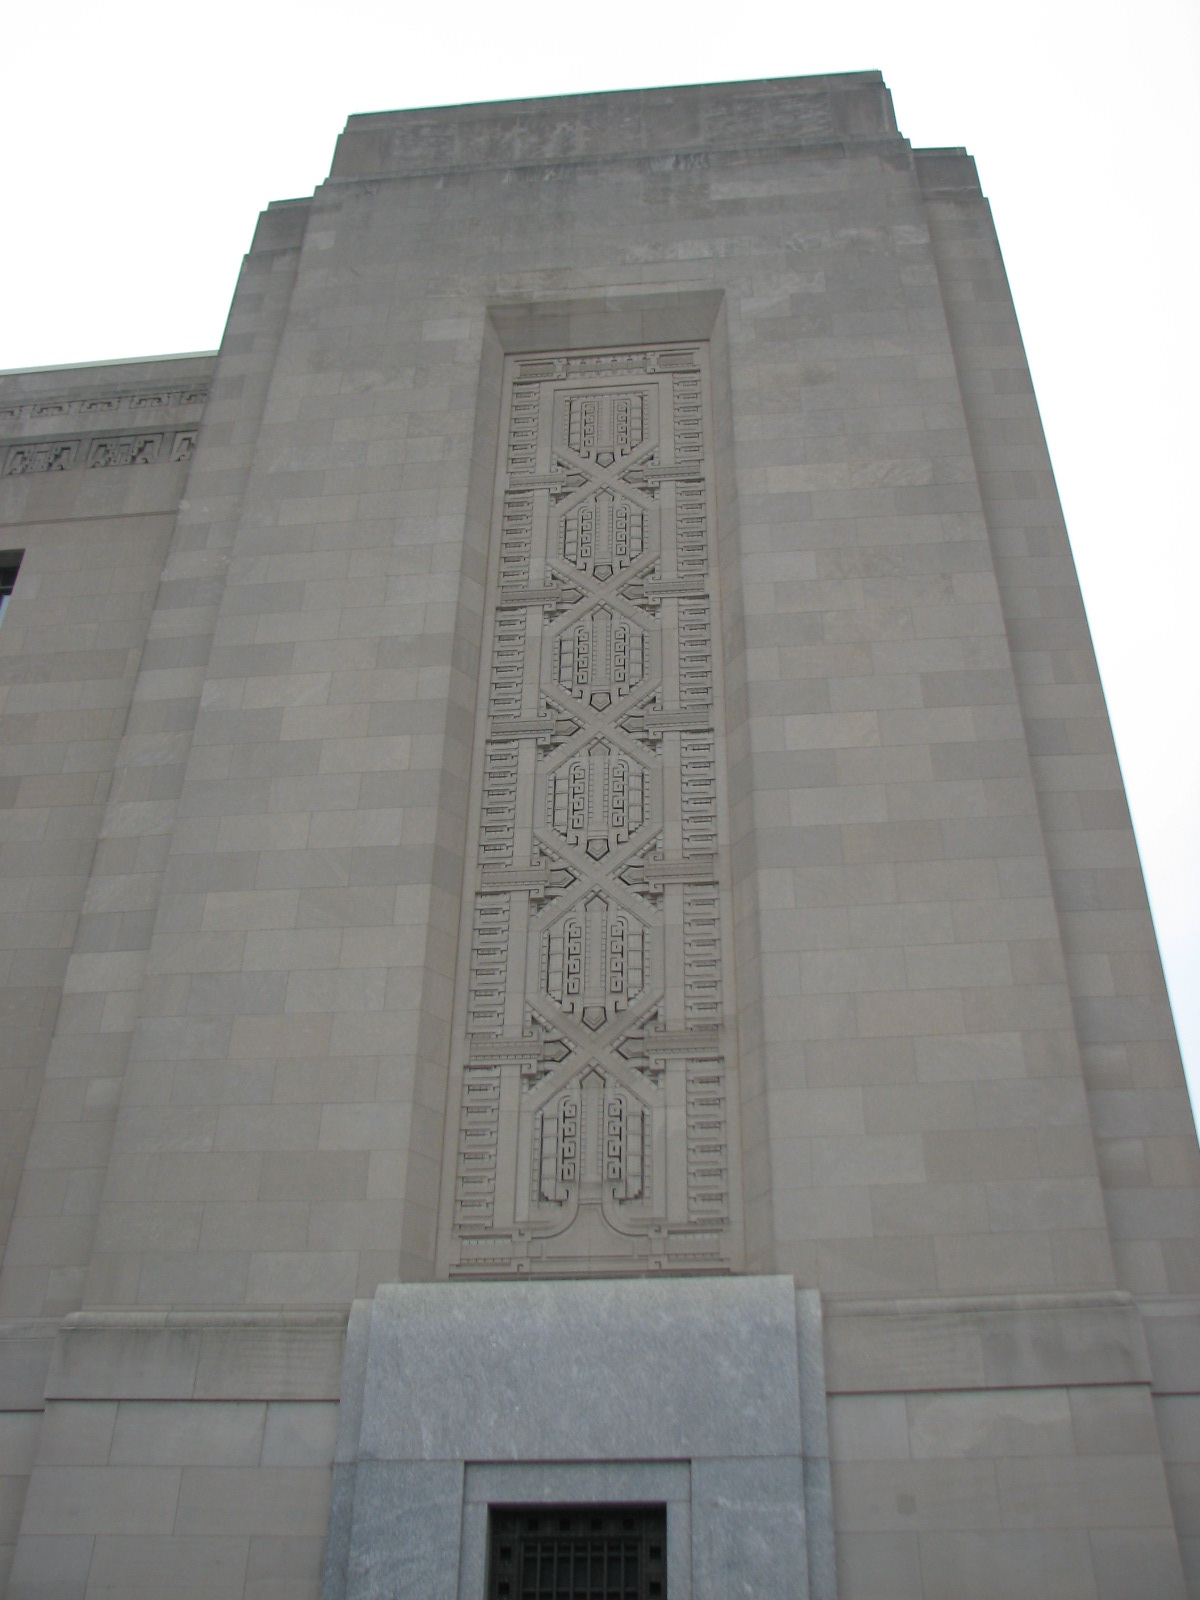 The pylons of the building are adorned with elaborate patterns.